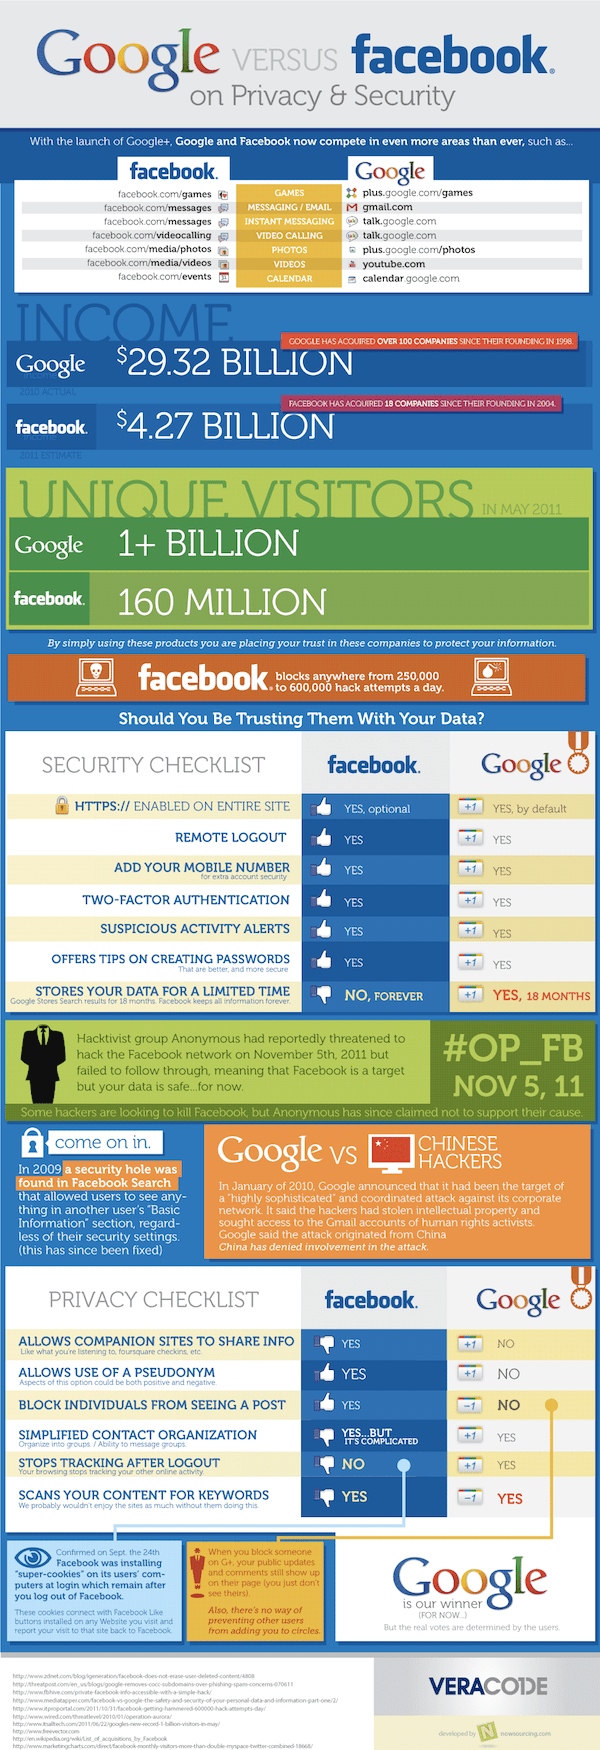 Google vs. Facebook on Privacy and Security 1